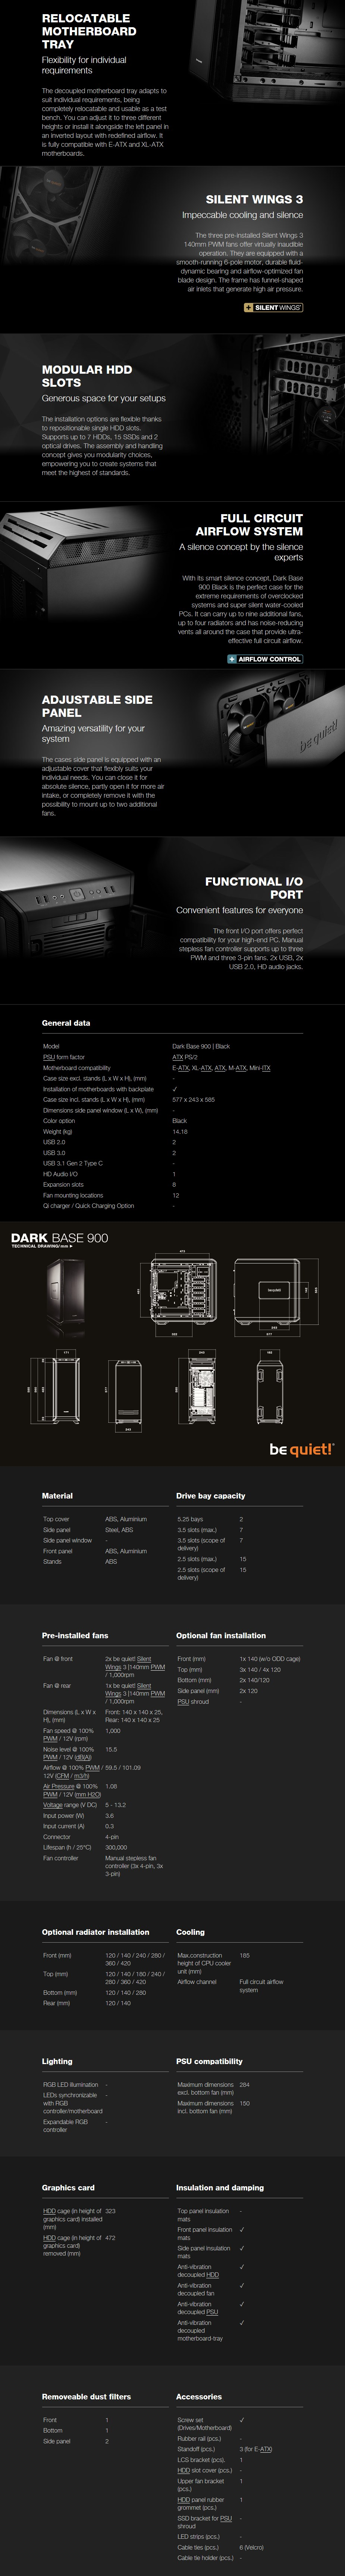 be quiet! Dark Base 900 Mid-Tower E-ATX Case - Black - Overview 1